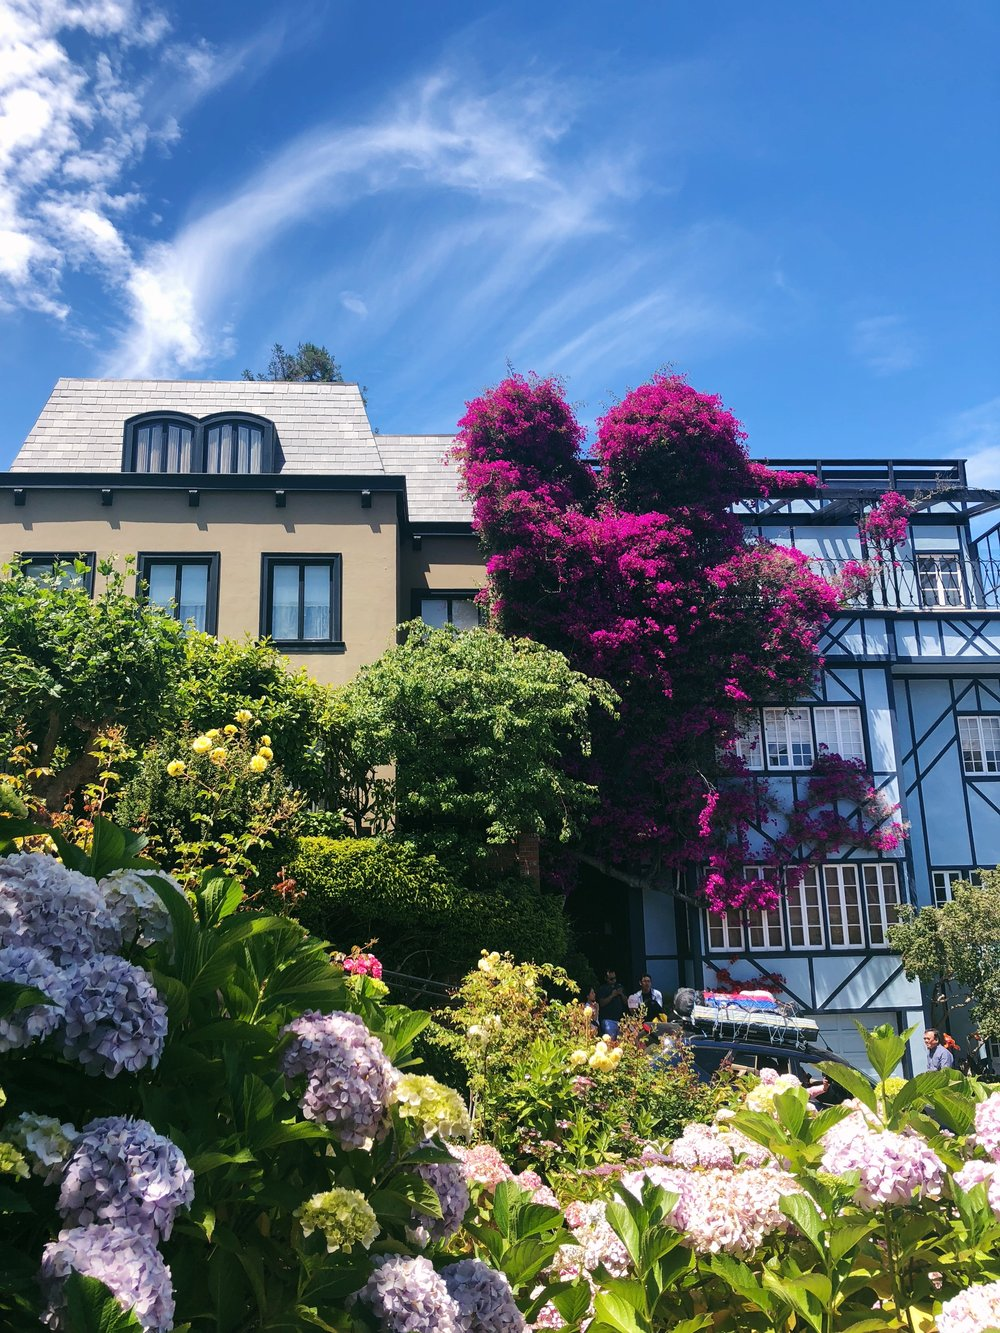 Lombard Street - Probably the nicest and most unique street on the west coast. Lombard street is filled with flowers and tourists. As nice as the street is, I enjoyed the surrounding houses and apartments event more.